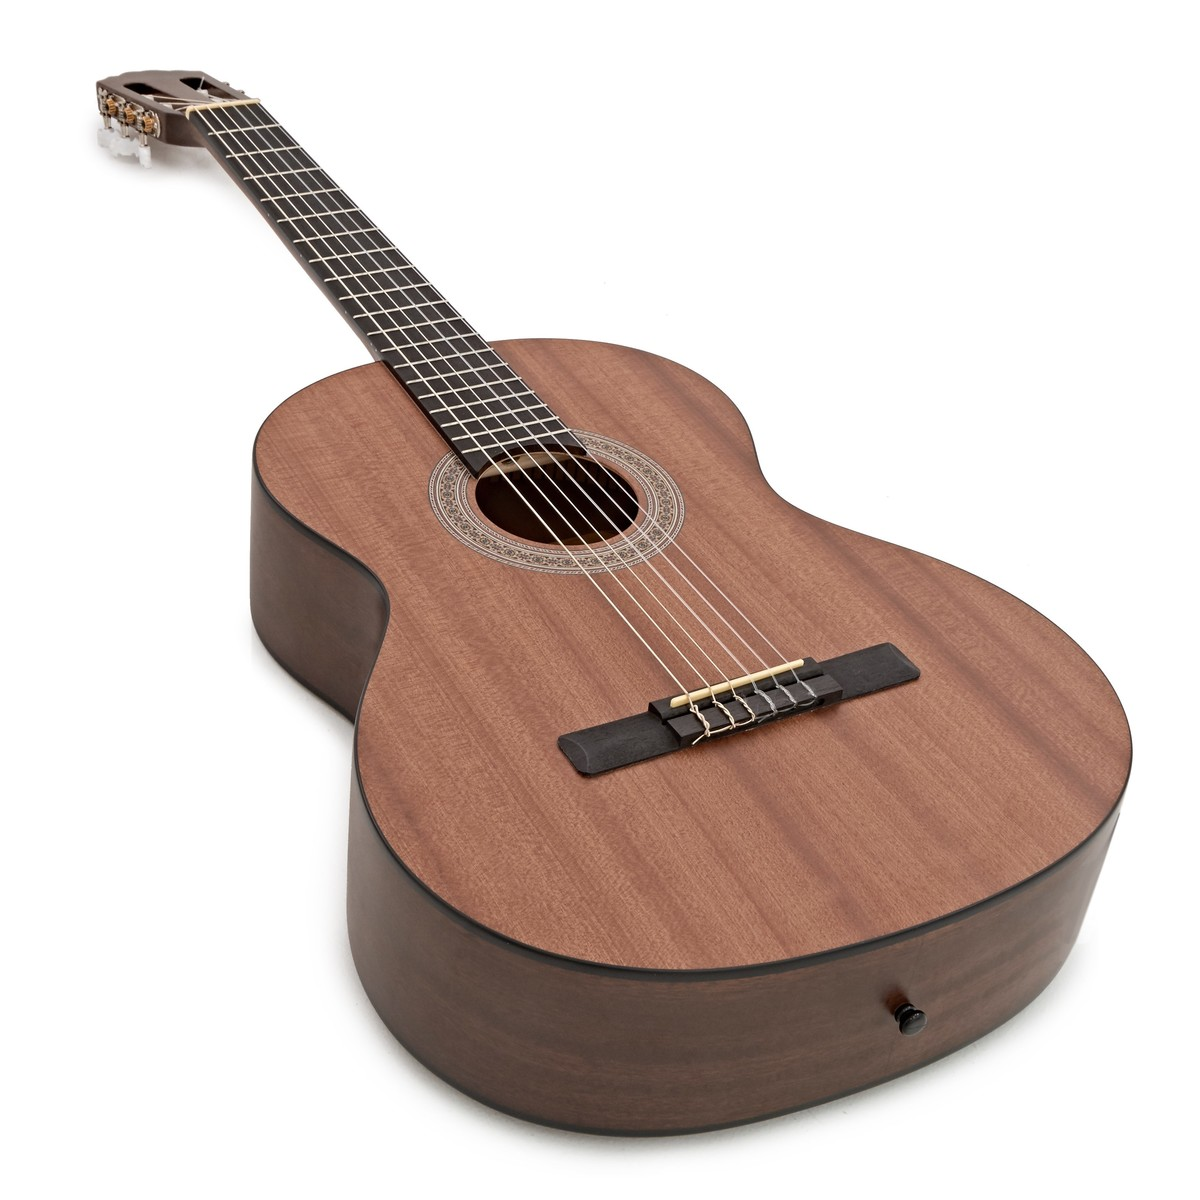 Hartwood Akustisk Gitarpakke for Gatemusikanter | Gear4music